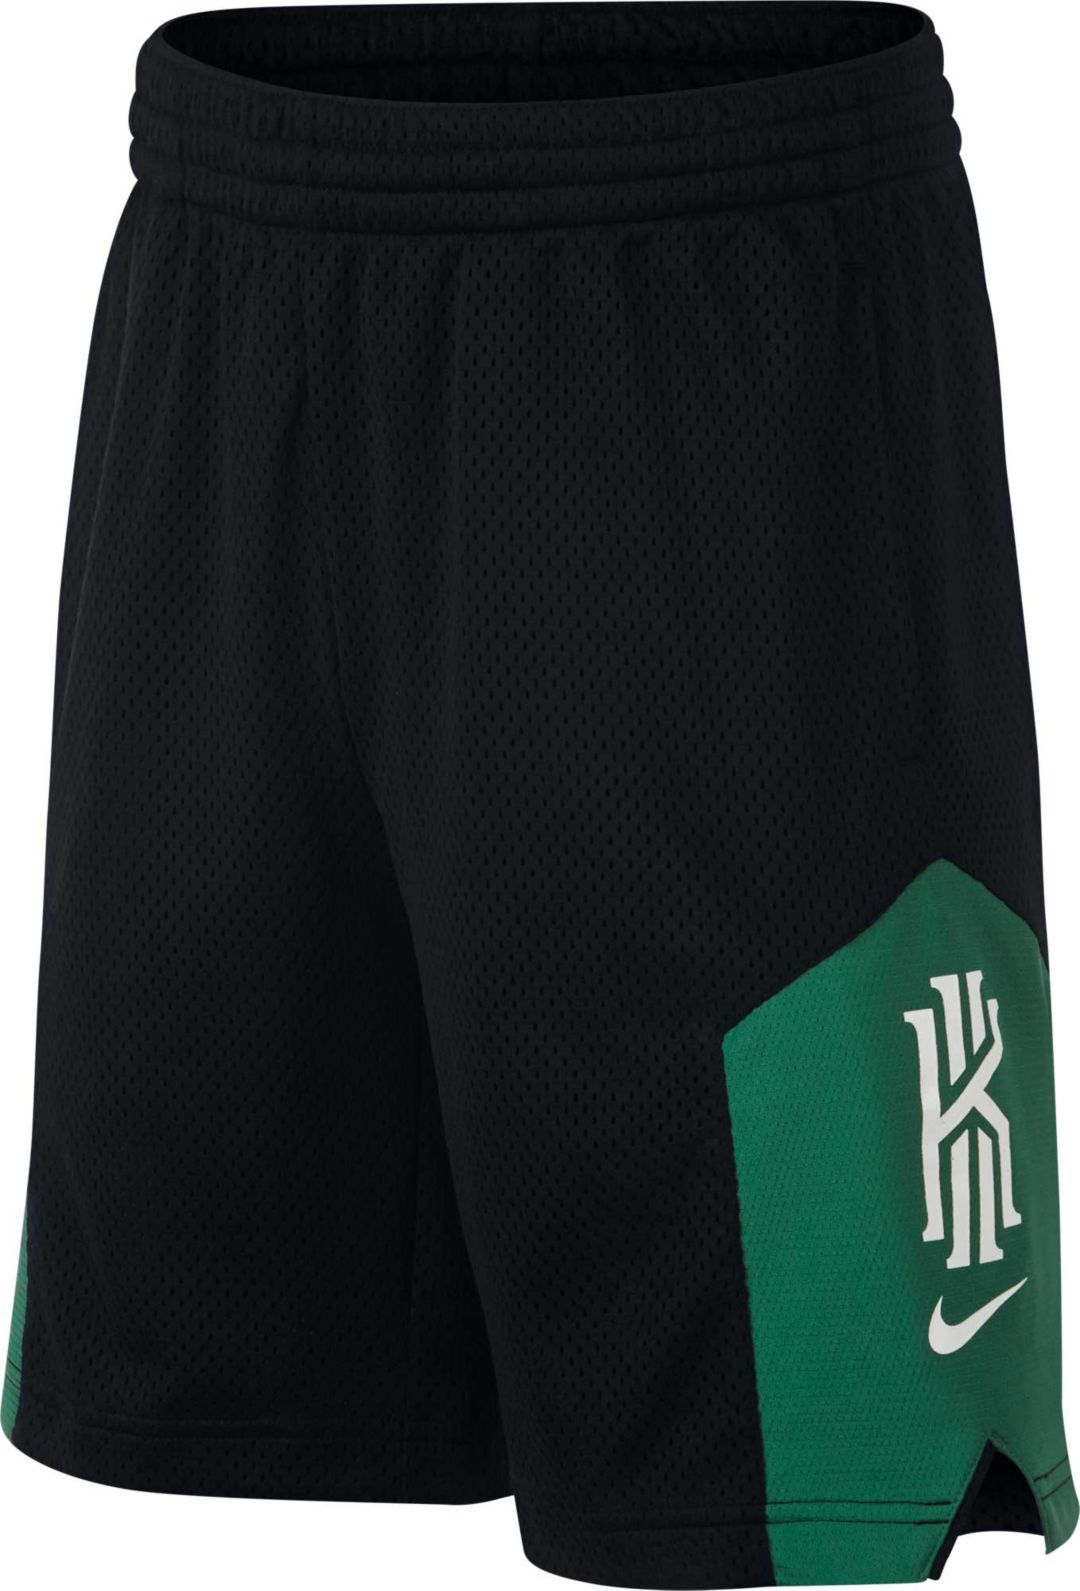 a28eb61f5 Nike Boys' Kyrie Dri-FIT Graphic Basketball Shorts. noImageFound. Previous